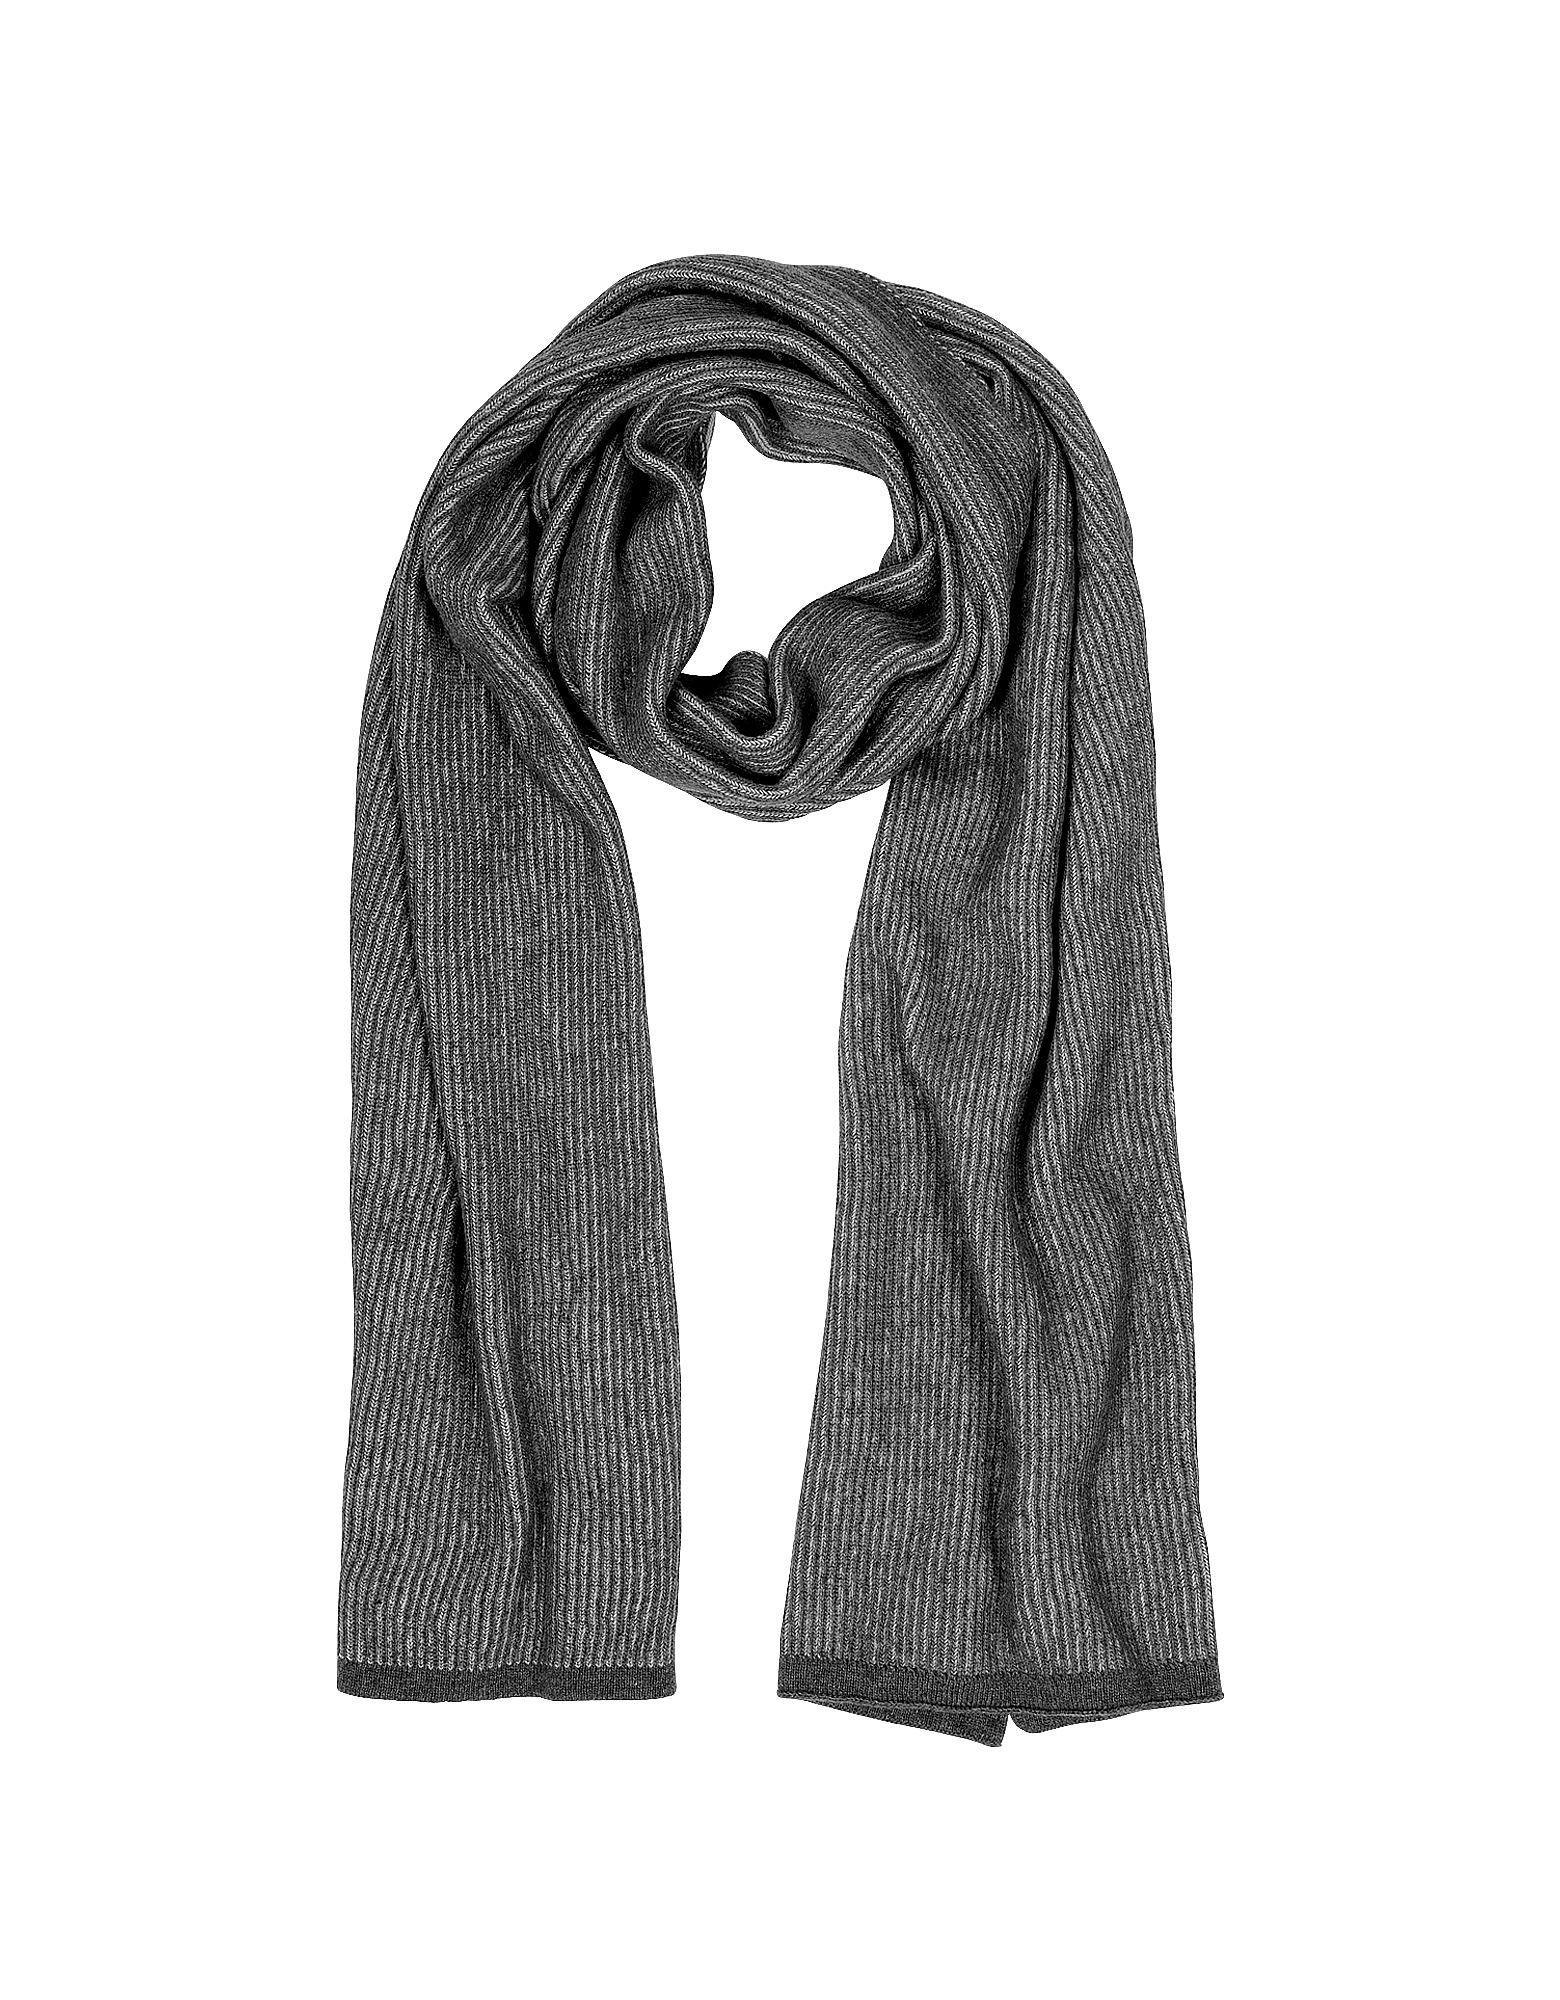 Mila Schon Scarves, Gray/Black Stripe Wool Blend Long Scarf